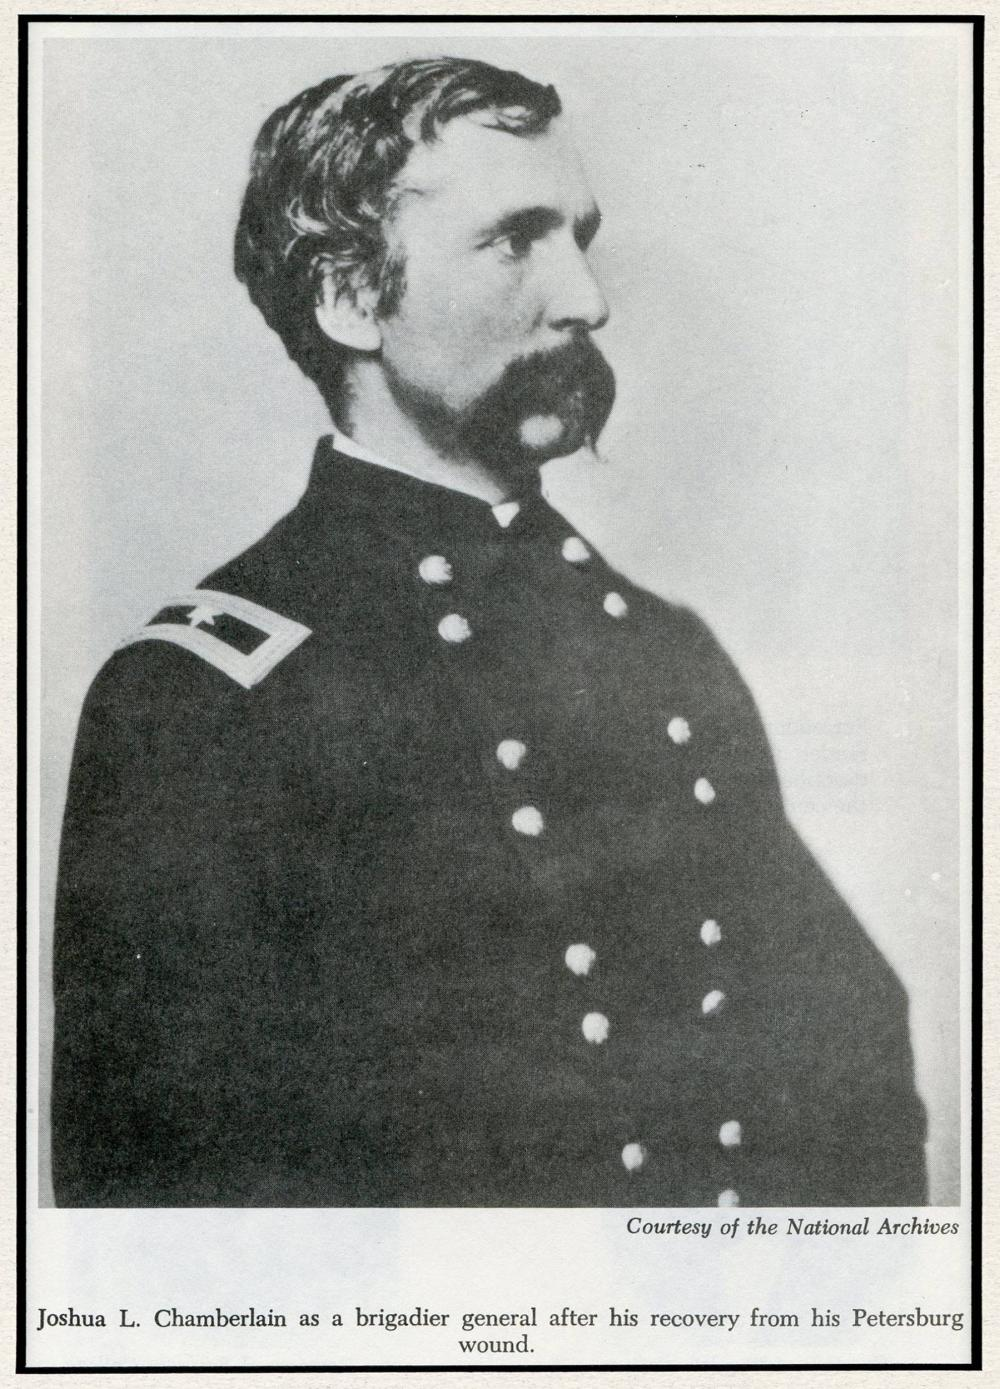 Joshua Chamberlain DS Handsomely Displayed!